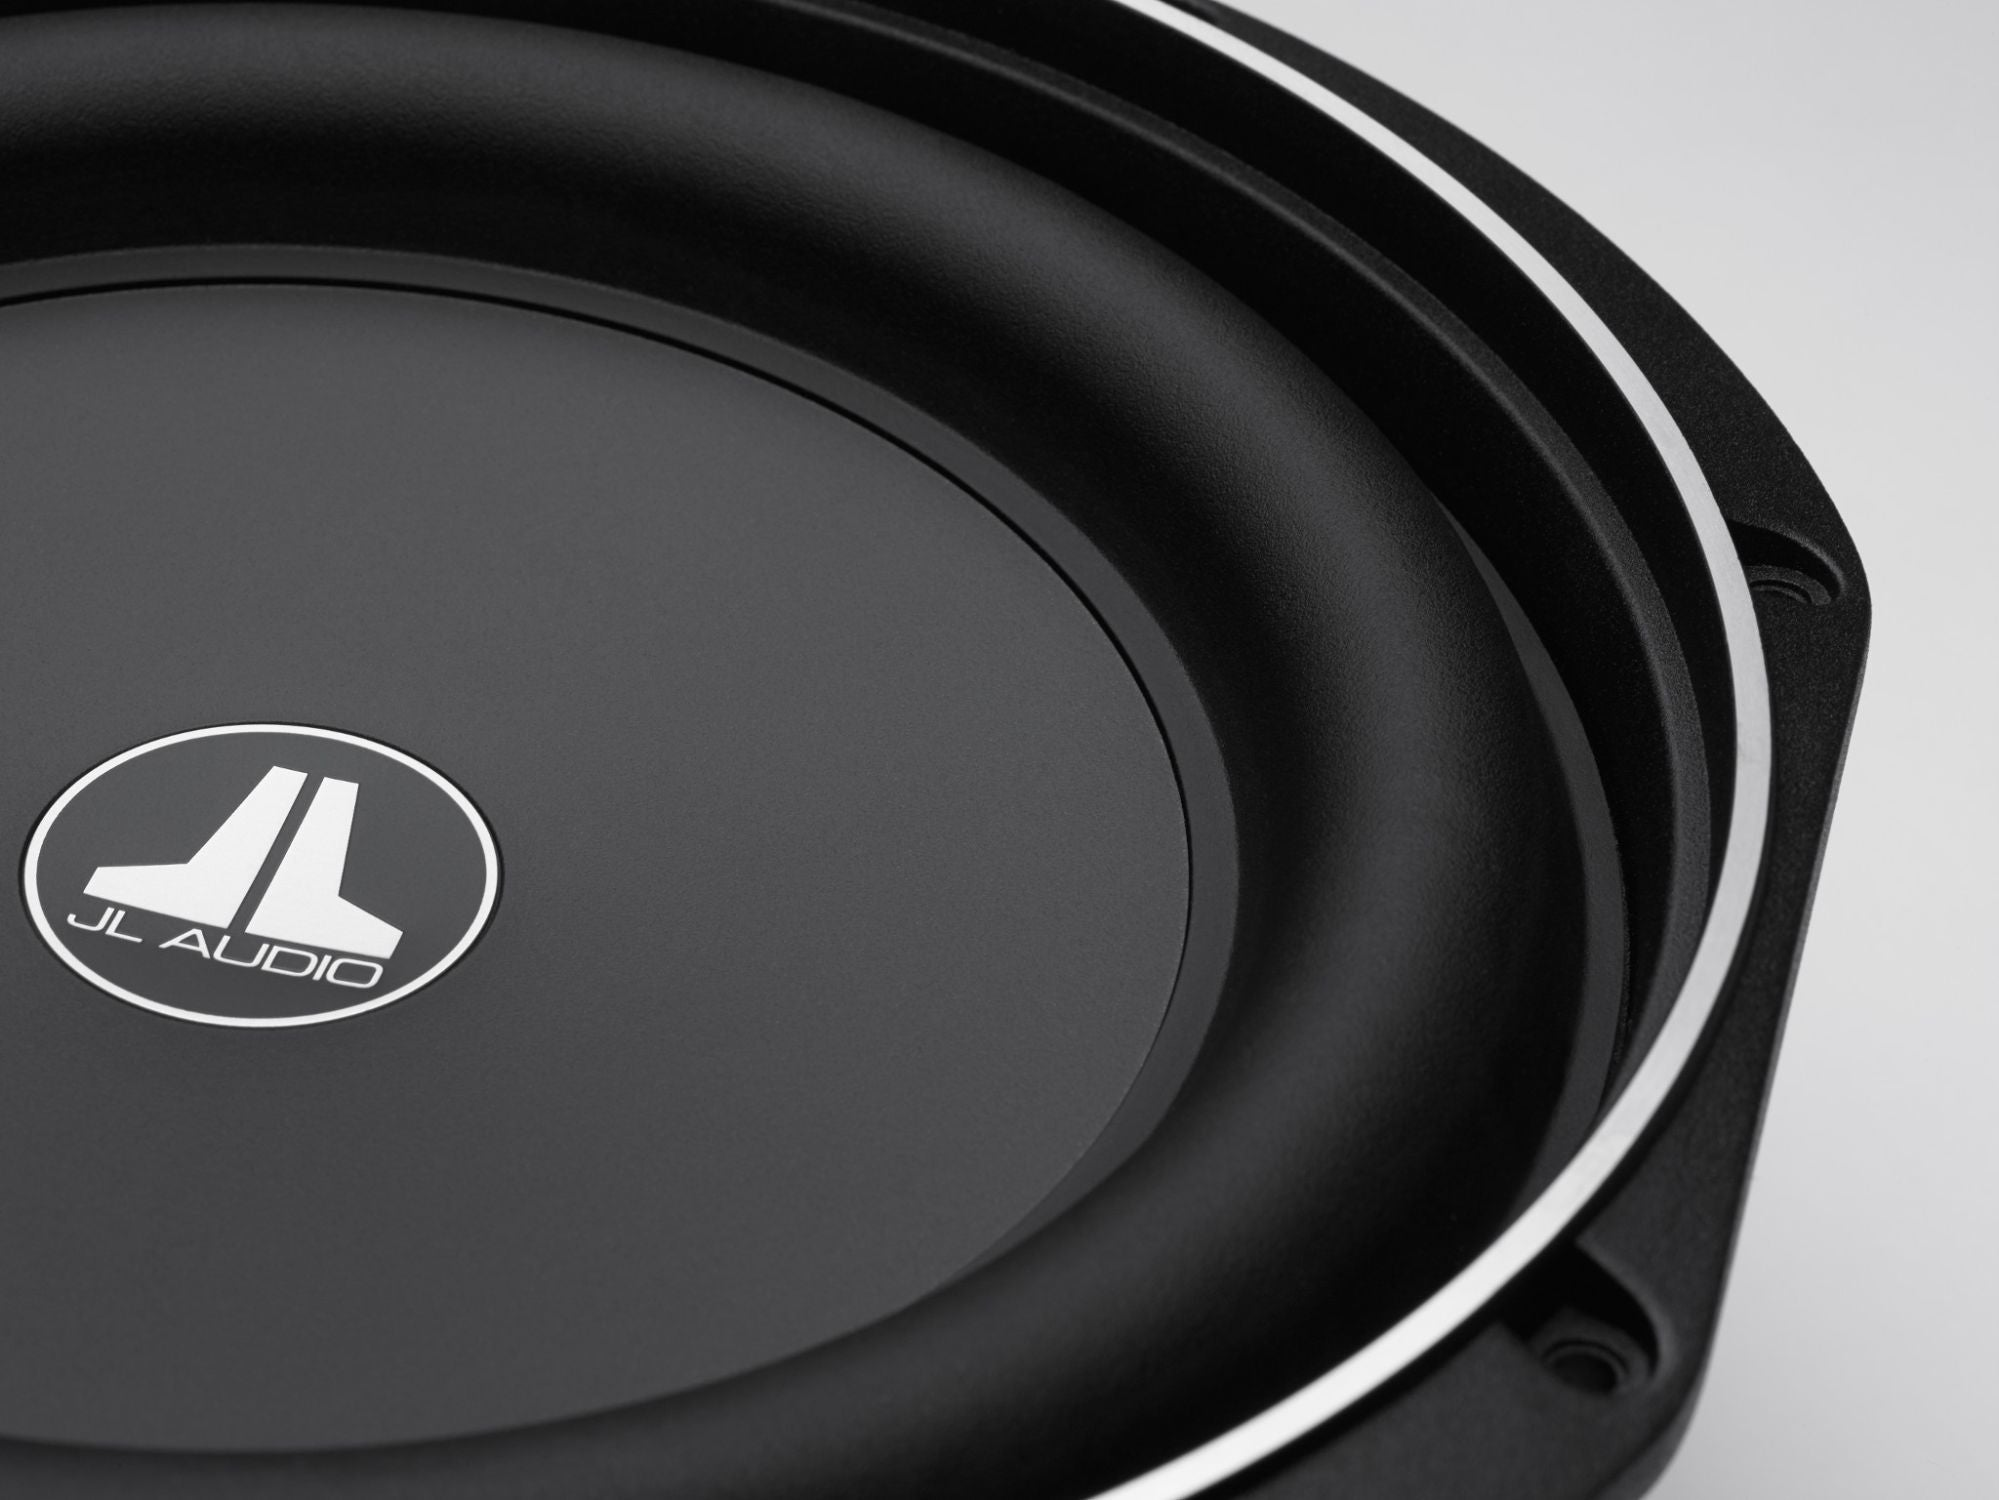 Detail of 10TW1 Subwoofer showing Frame and Surround from Front Edge